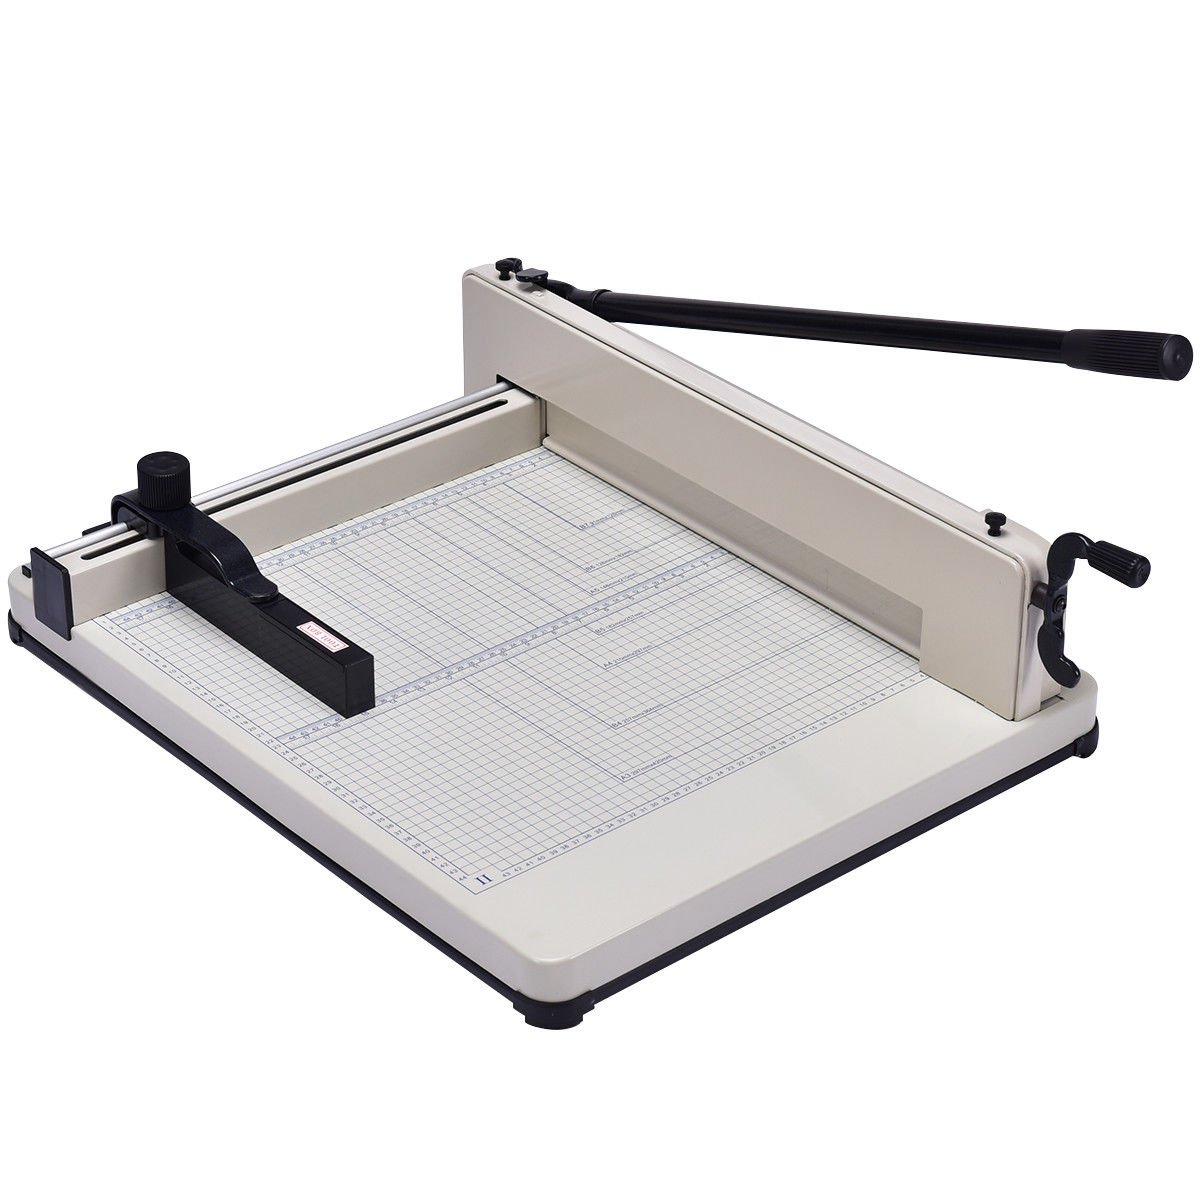 Giantex 17'' Guillotine Paper Cutter, Heavy Duty A3 Trimmer Machine with Commercial Metal Base and 400 Sheet Large Capacity for Home and Office, Paper Trimmer by Giantex